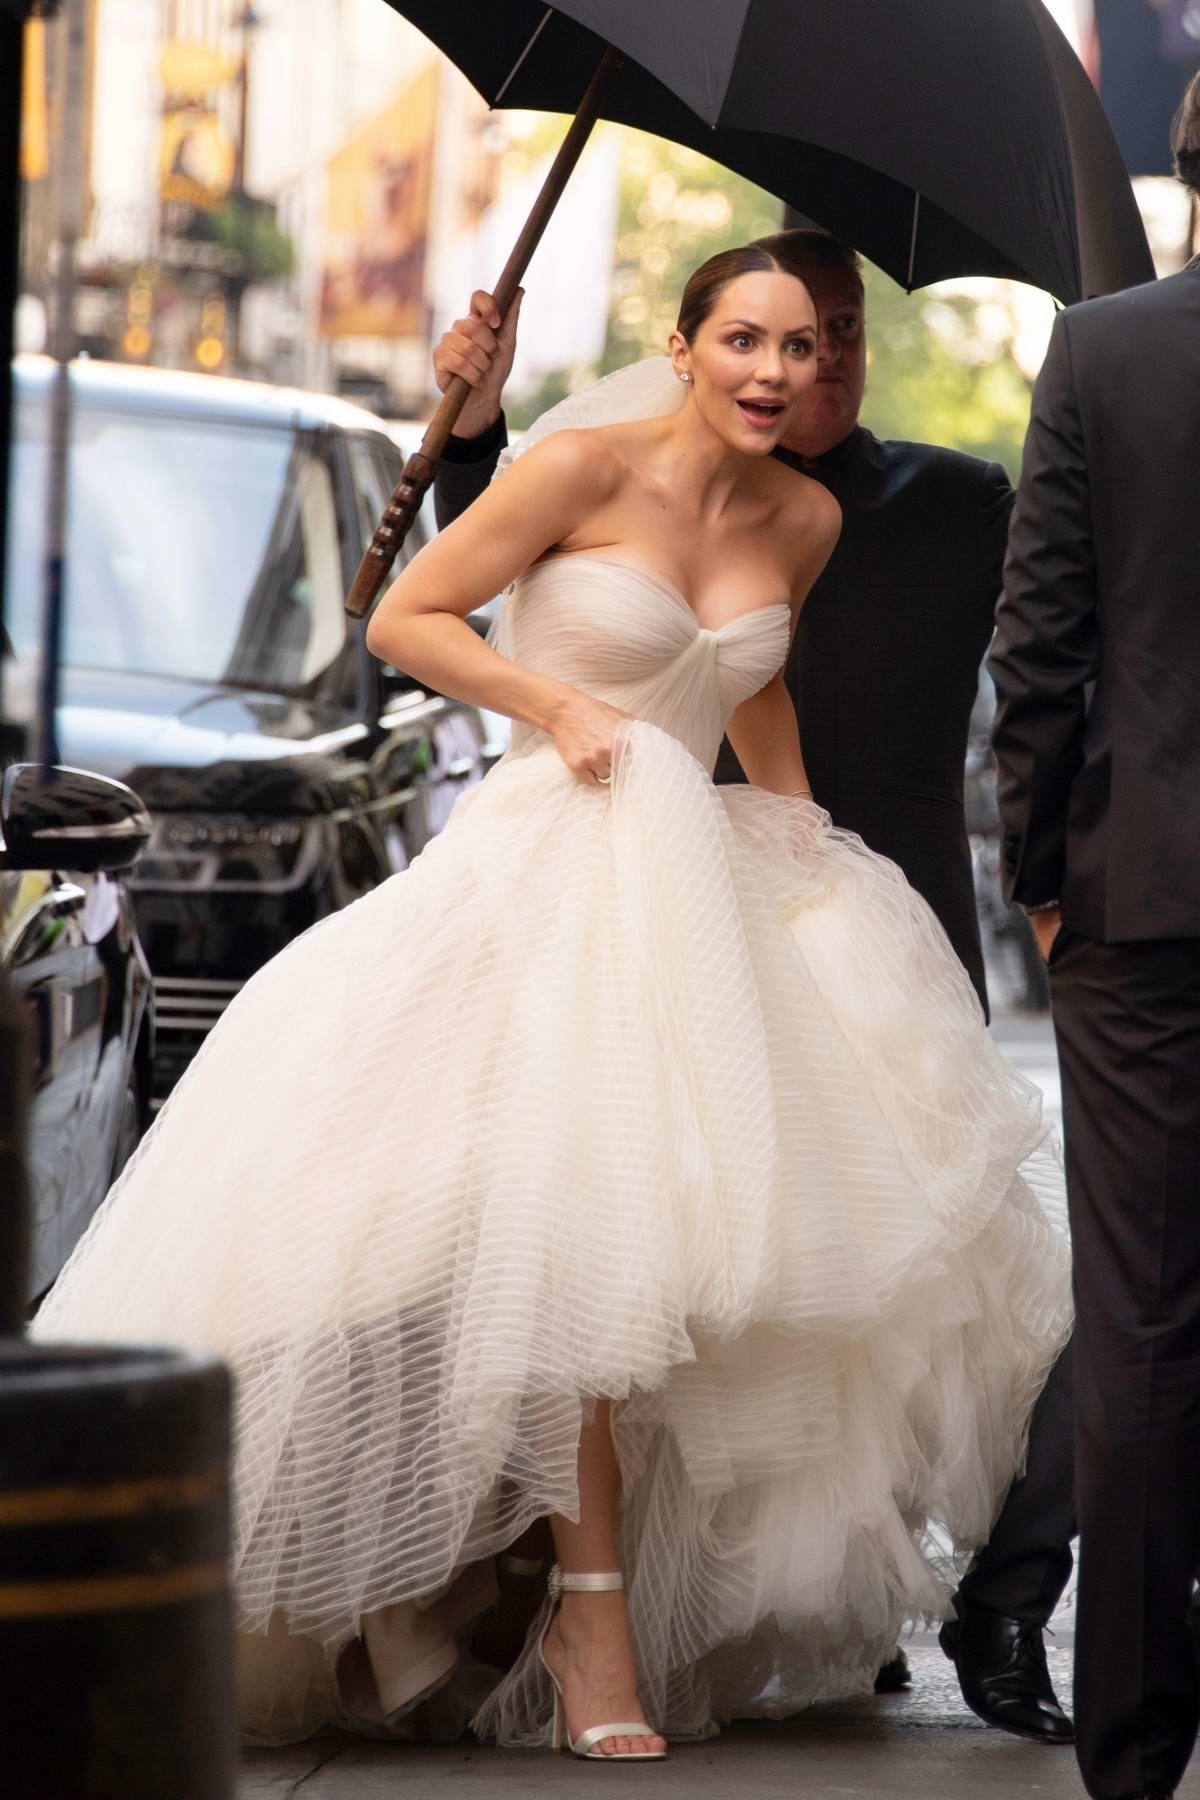 Katharine McPhee arrives for her wedding at the St. Yeghiche Armenian Apostolic Church in Kensington, London, UK